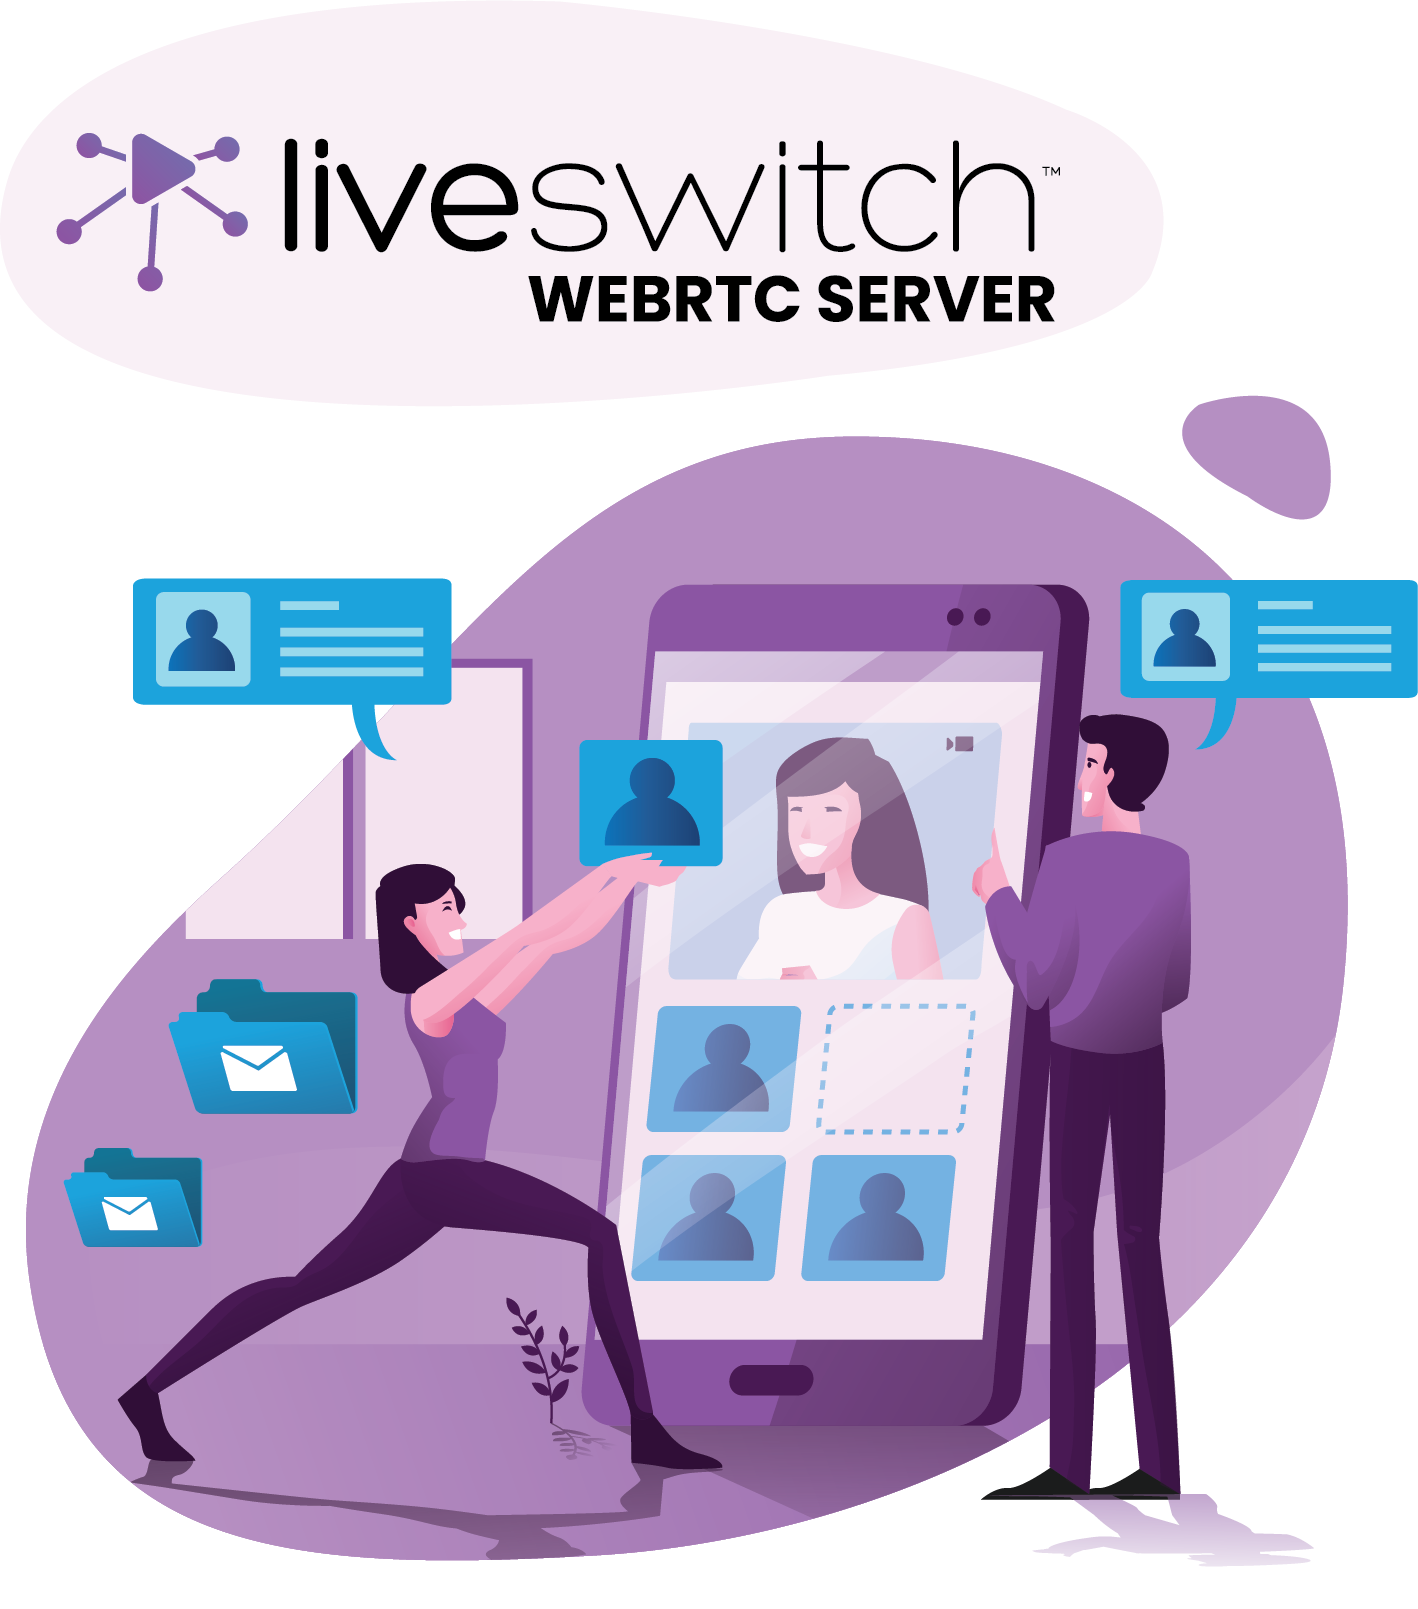 LiveSwitch WebRTC Server For Flexible Video